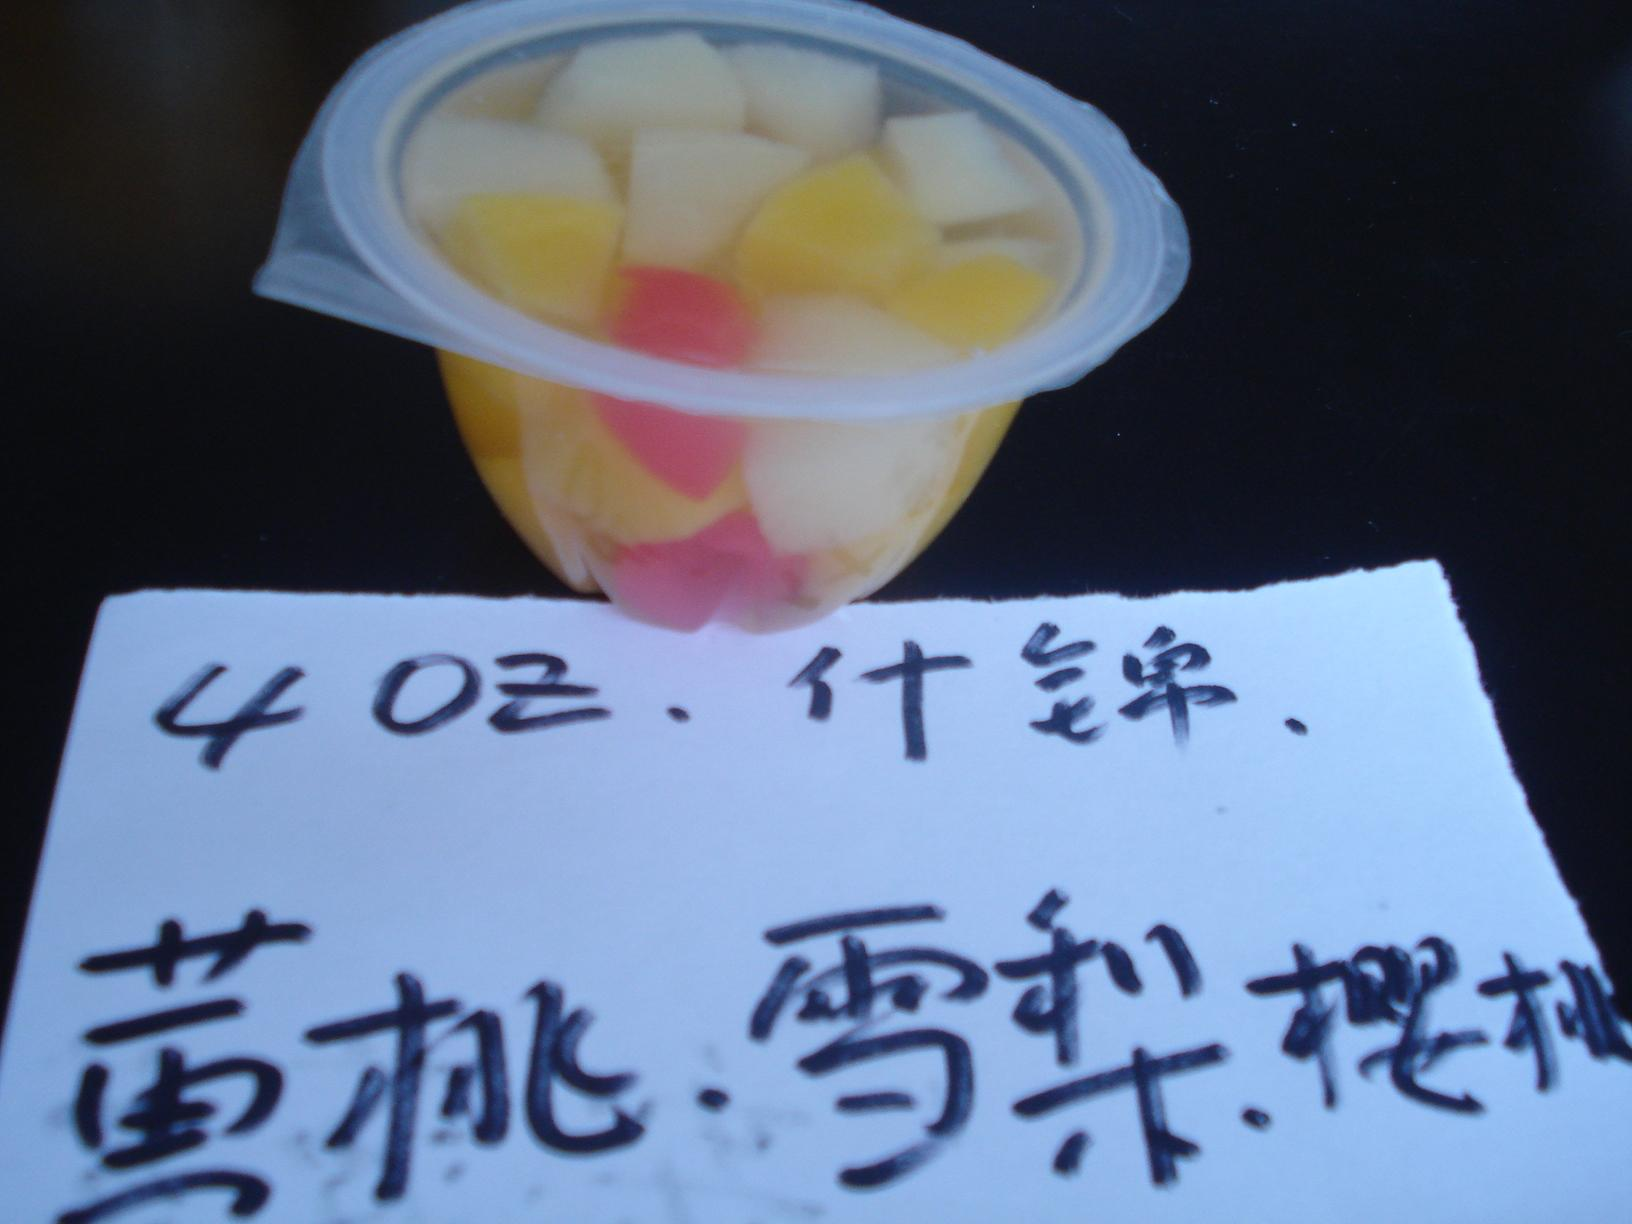 4oz fruit cup in light syrup-mixed fruit